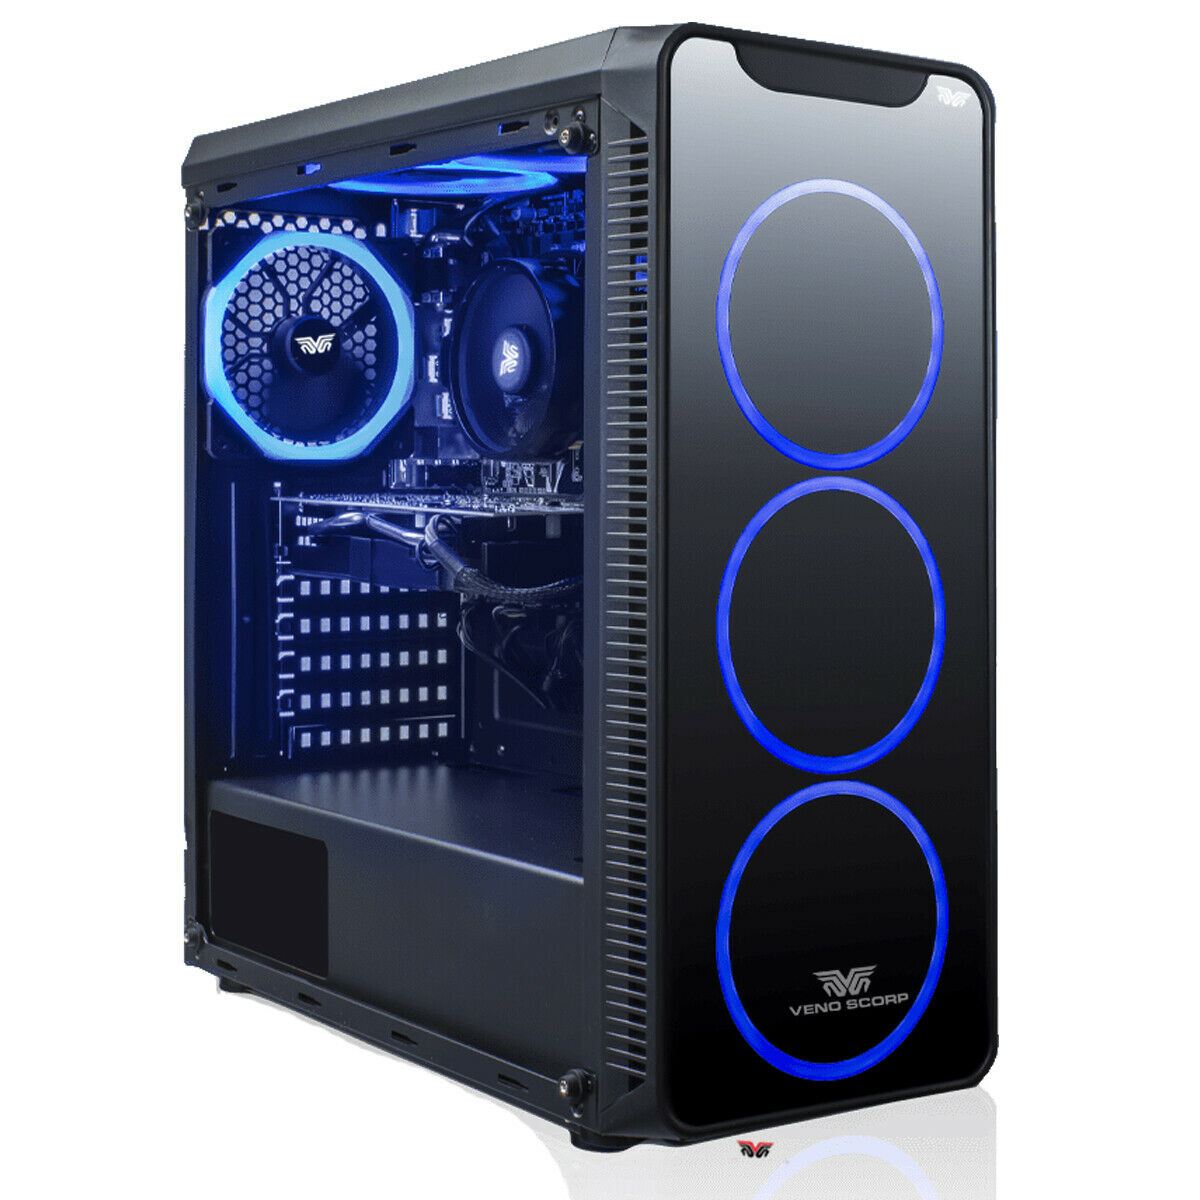 Computer Games - ULTRA FAST i3 i5 i7 Gaming Computer PC 2TB + SSD 16GB RAM GTX 1660 Win10, 6FANS